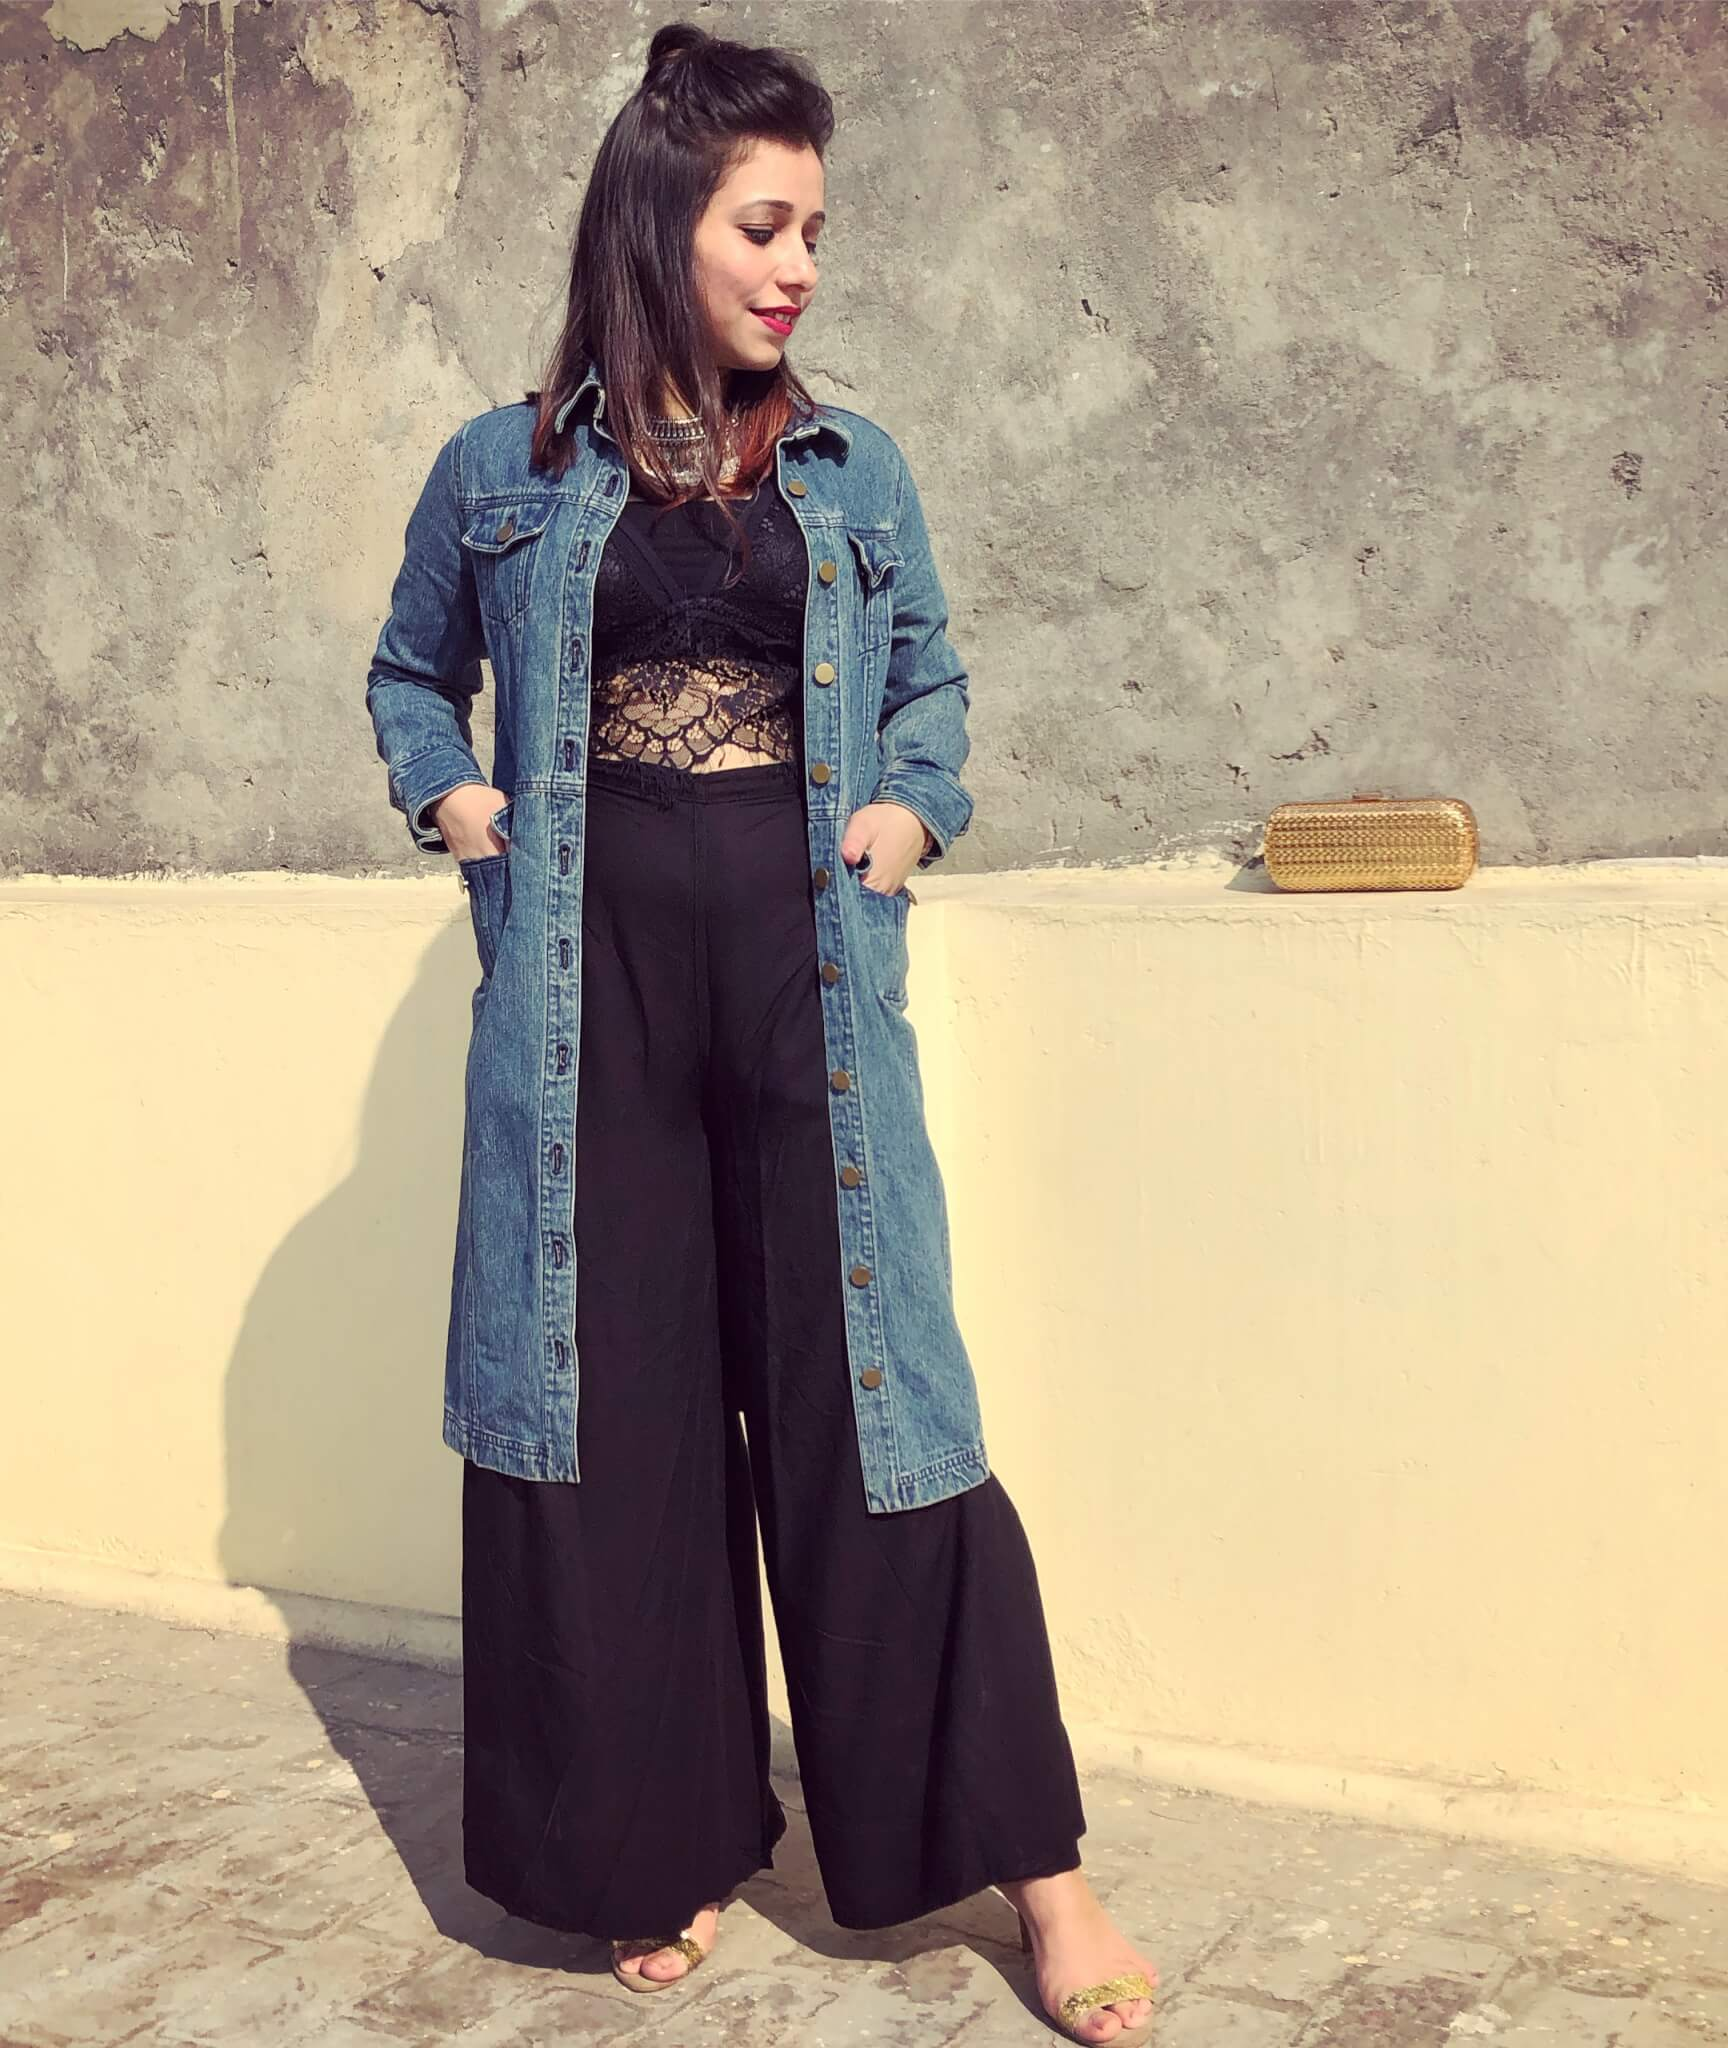 A mesh top with a palazzo and a denim tunic-winter season outfit ideas